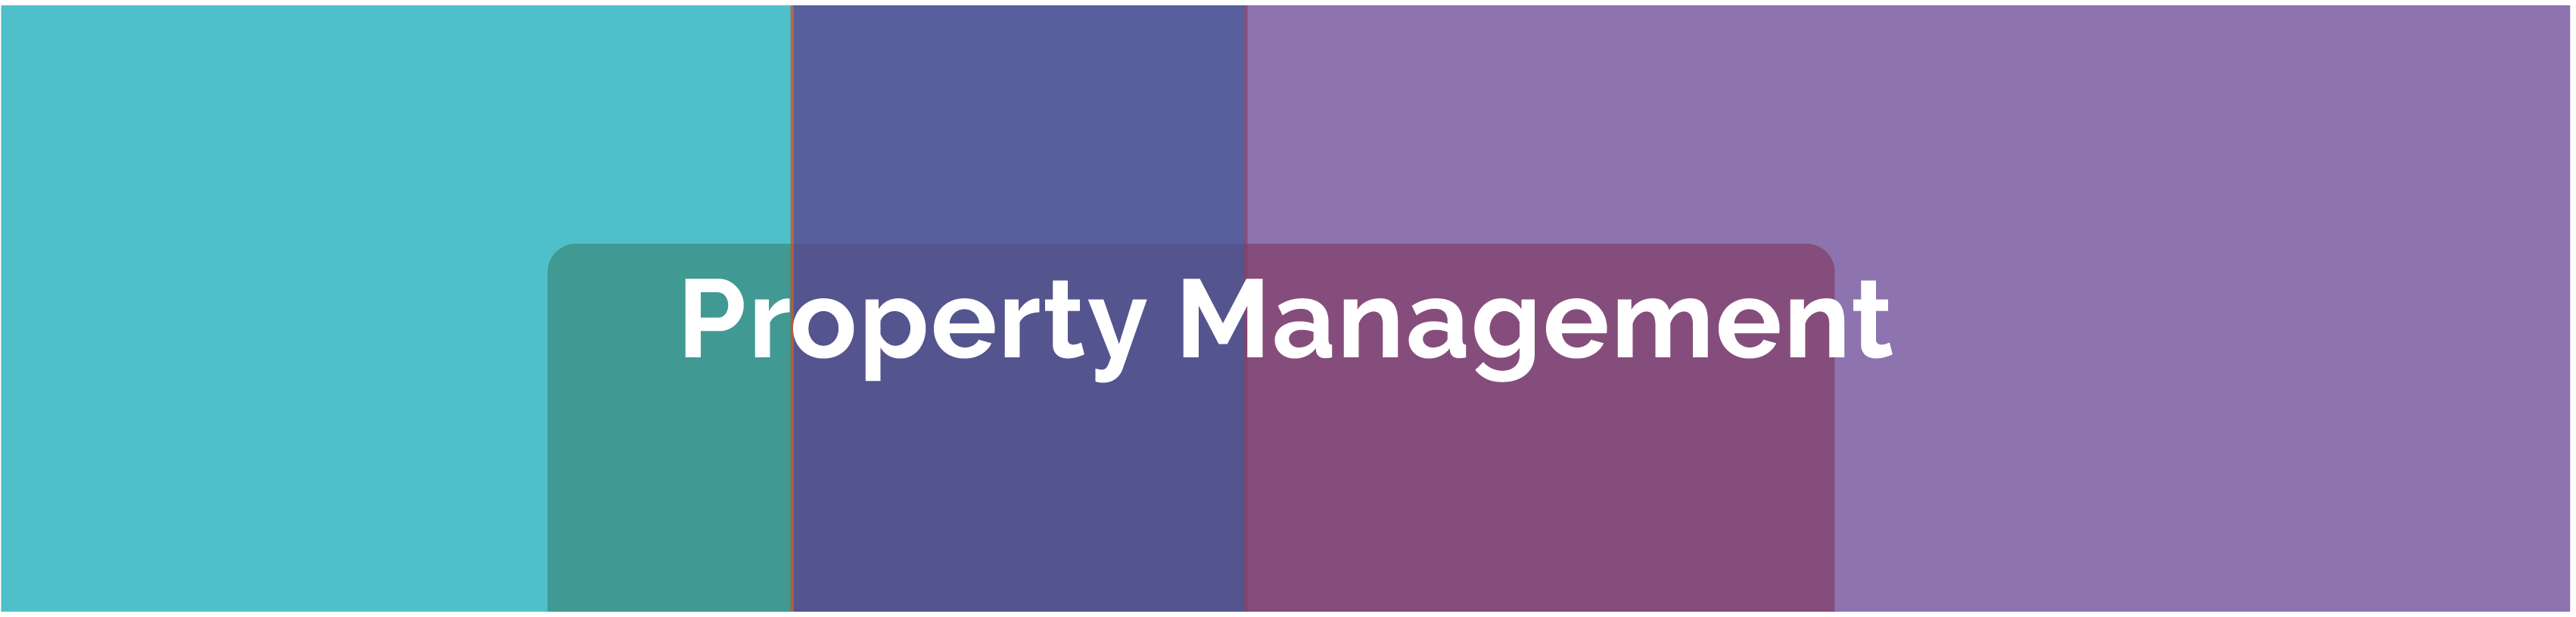 Rent Collection | Service Charge | Planned Maintenance | Asset Management Header Image